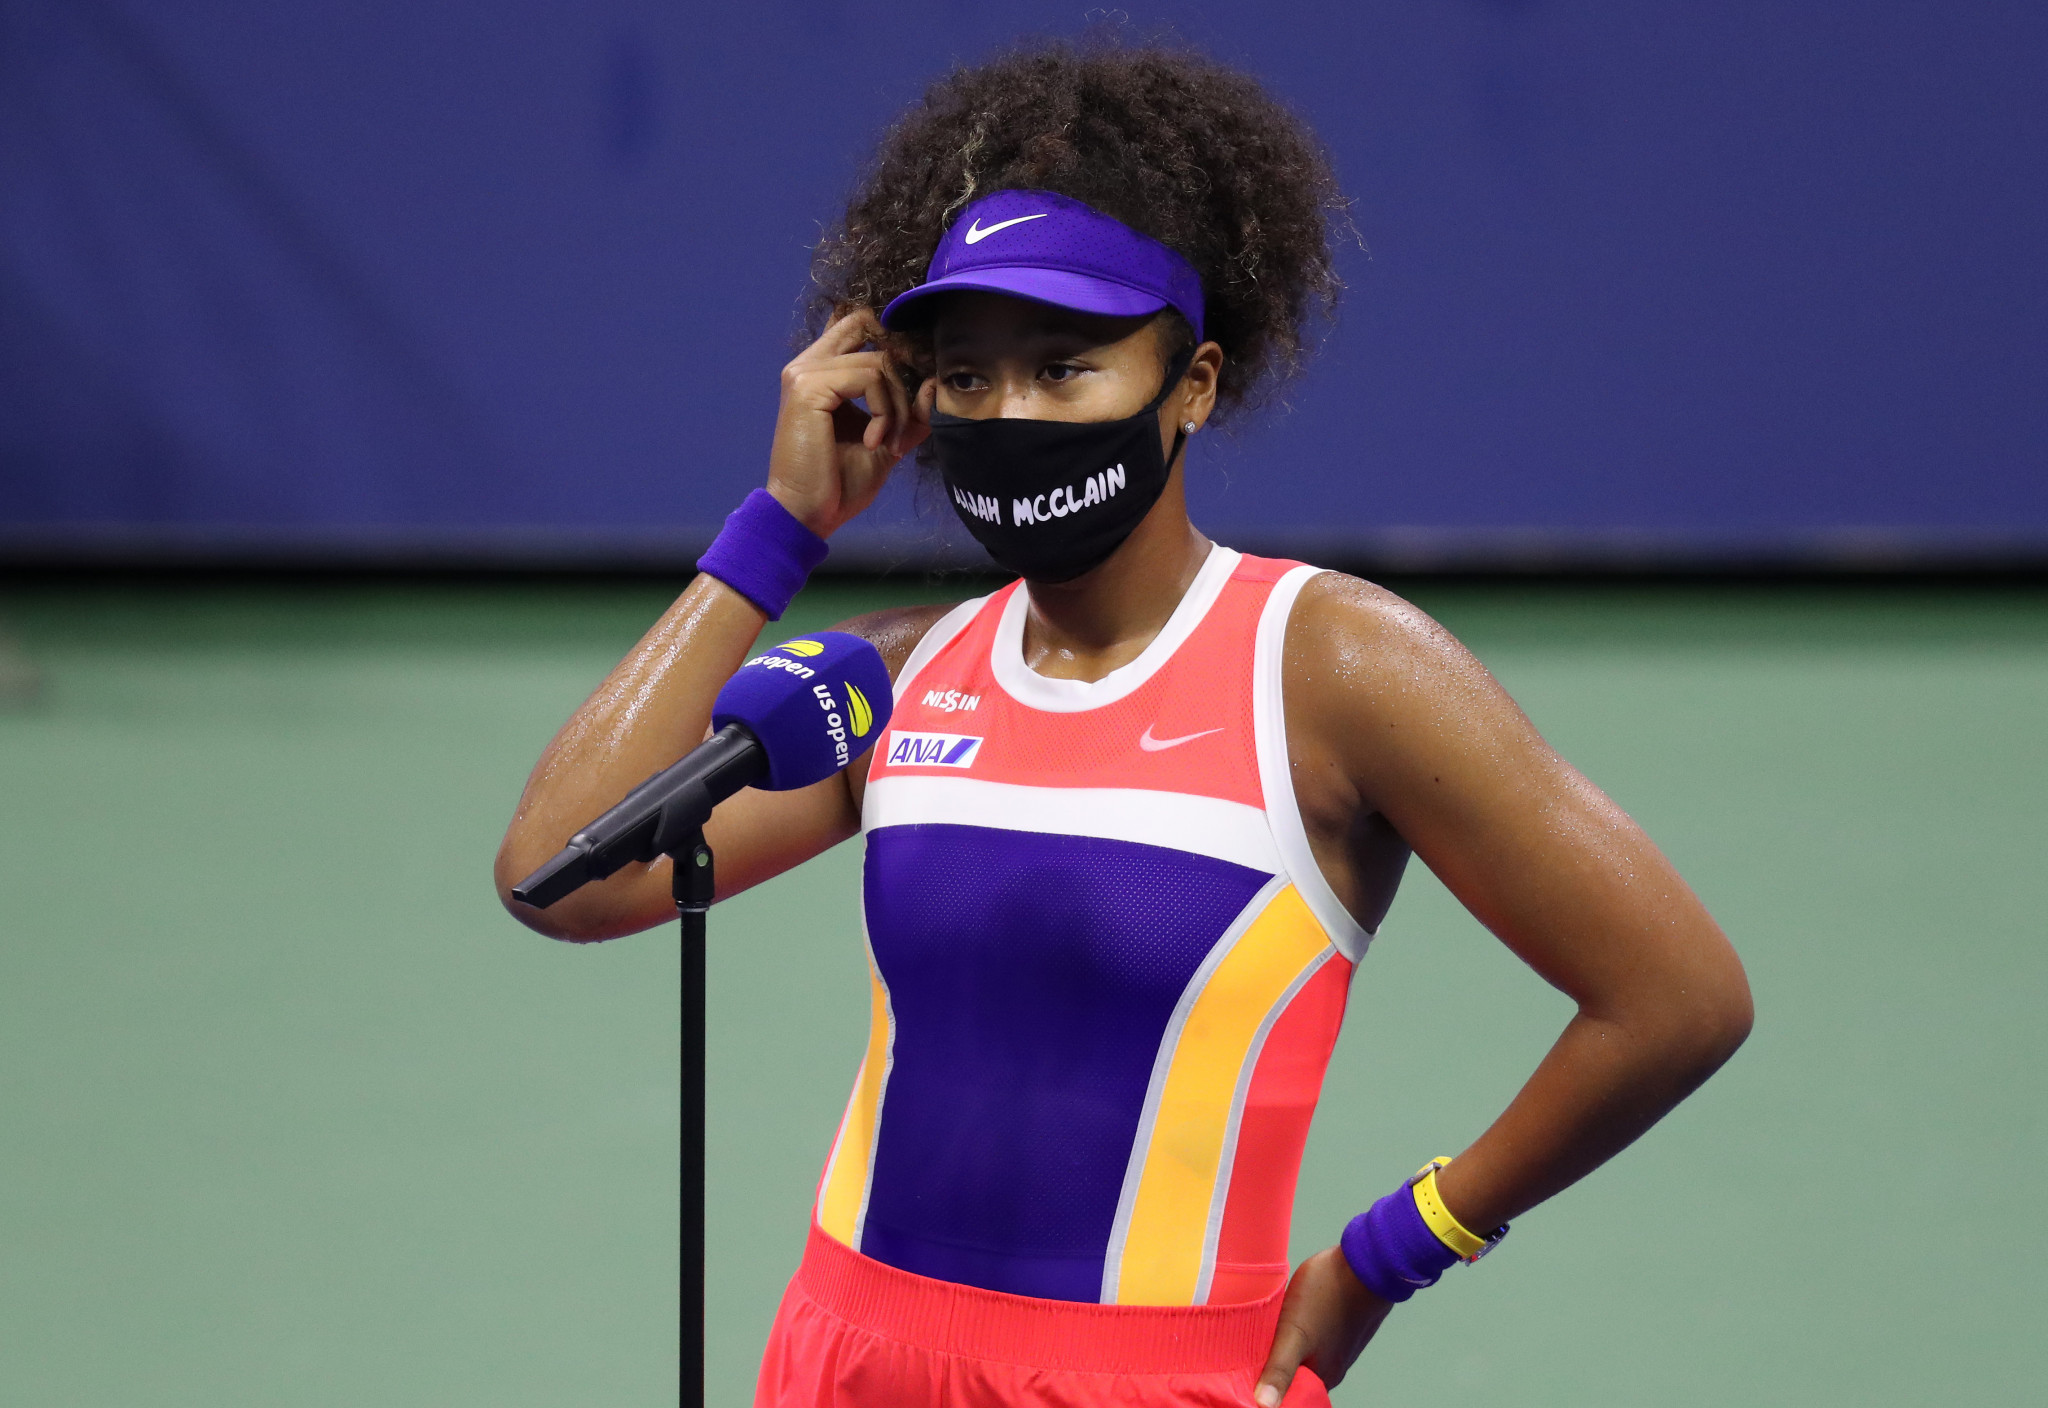 Japan's Naomi Osaka, wearing one of her collection of facemasks, is interviewed after her round two win ©Getty Images